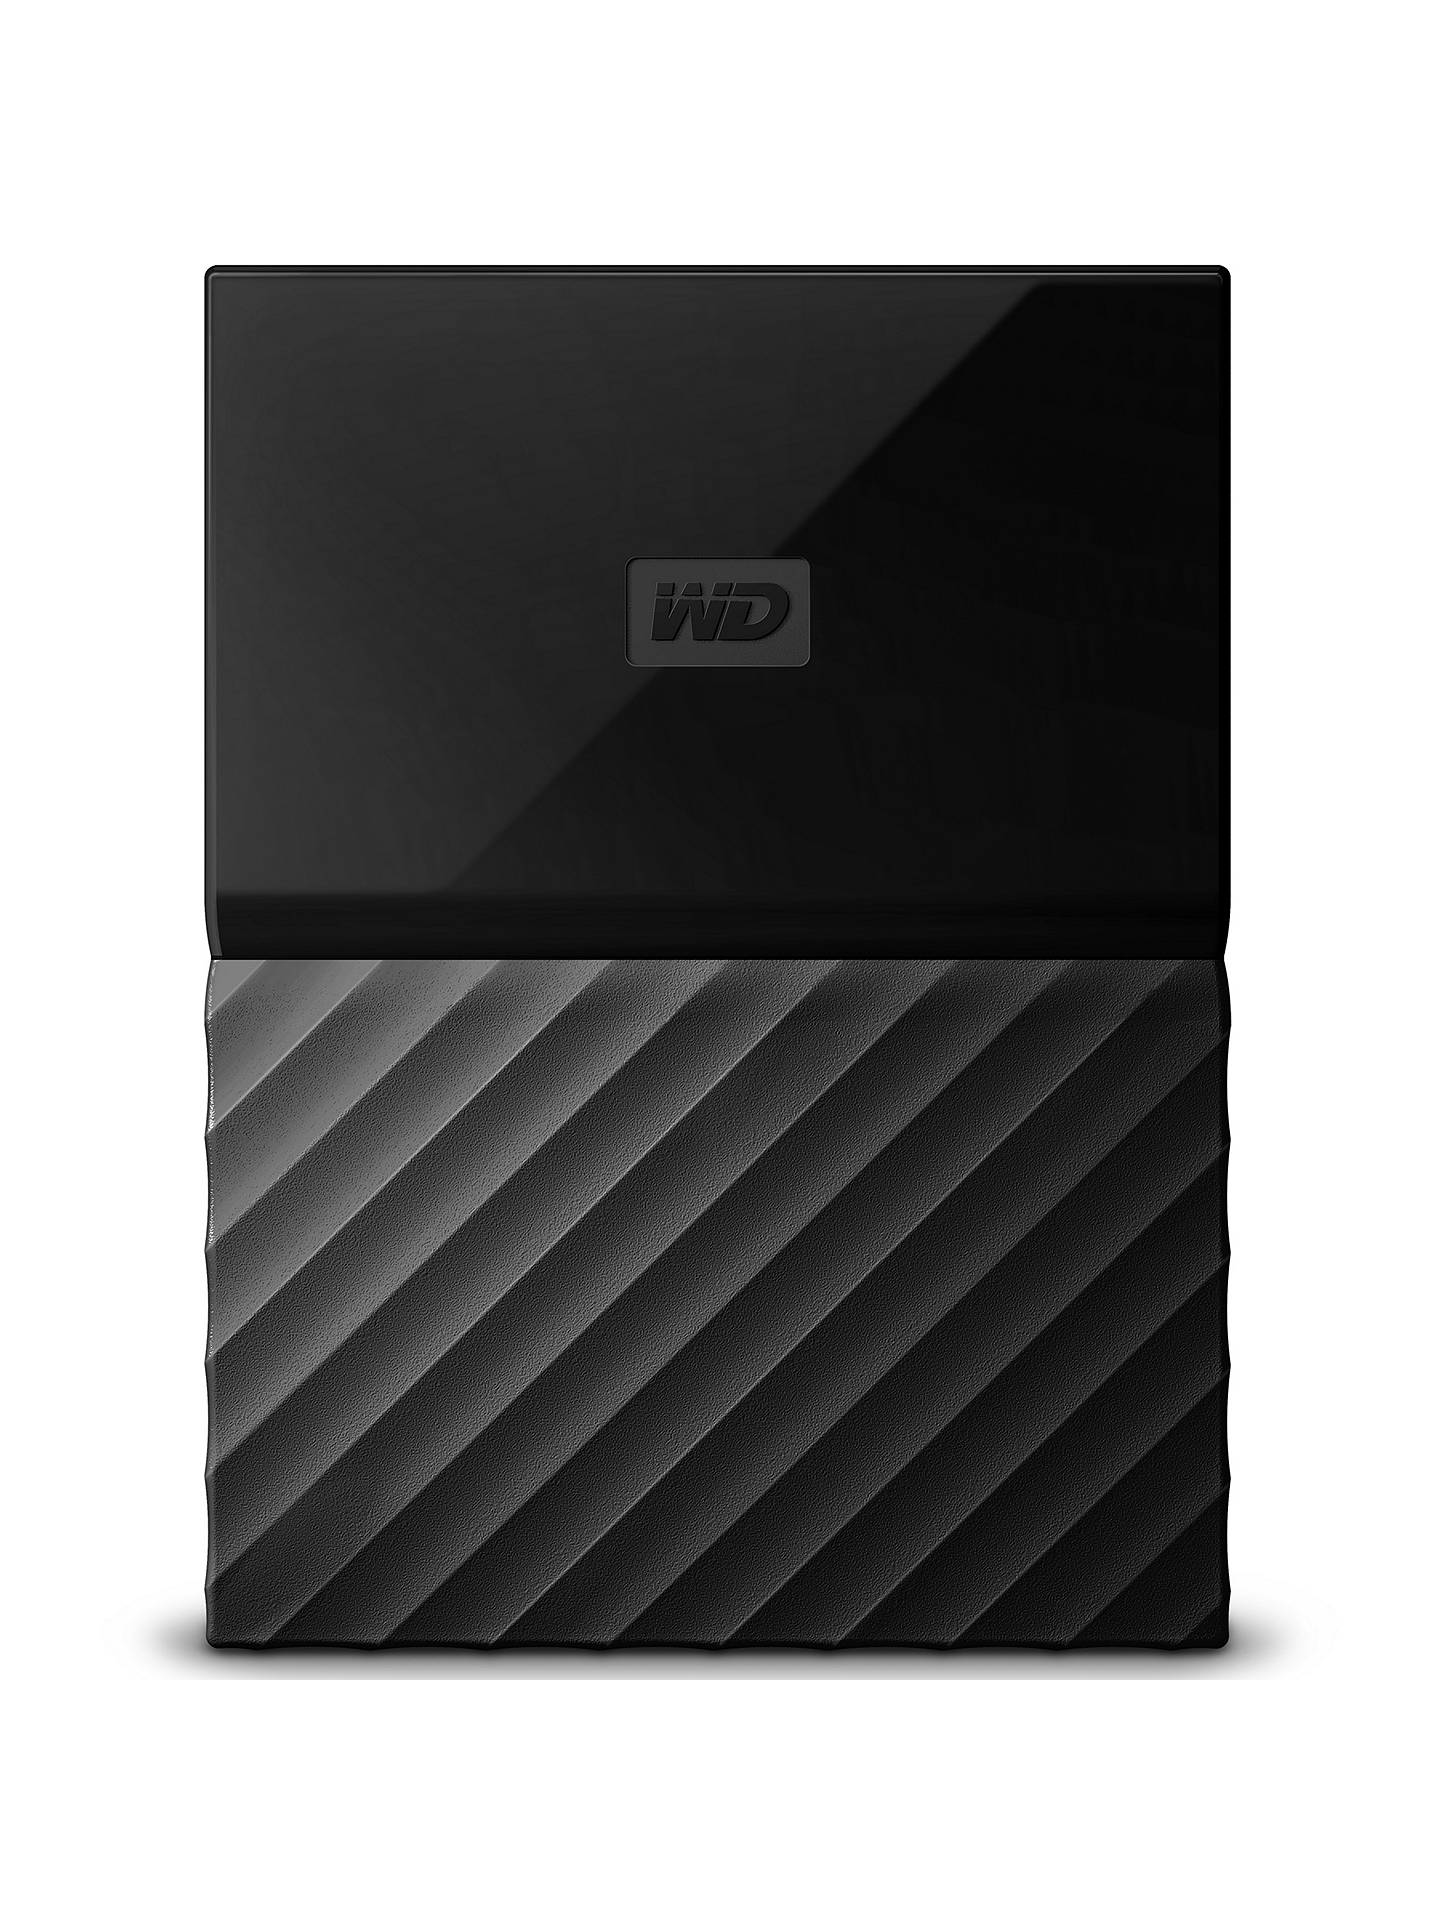 BuyWD My Passport Portable Hard Drive for Mac, 1TB, Black Online at johnlewis.com